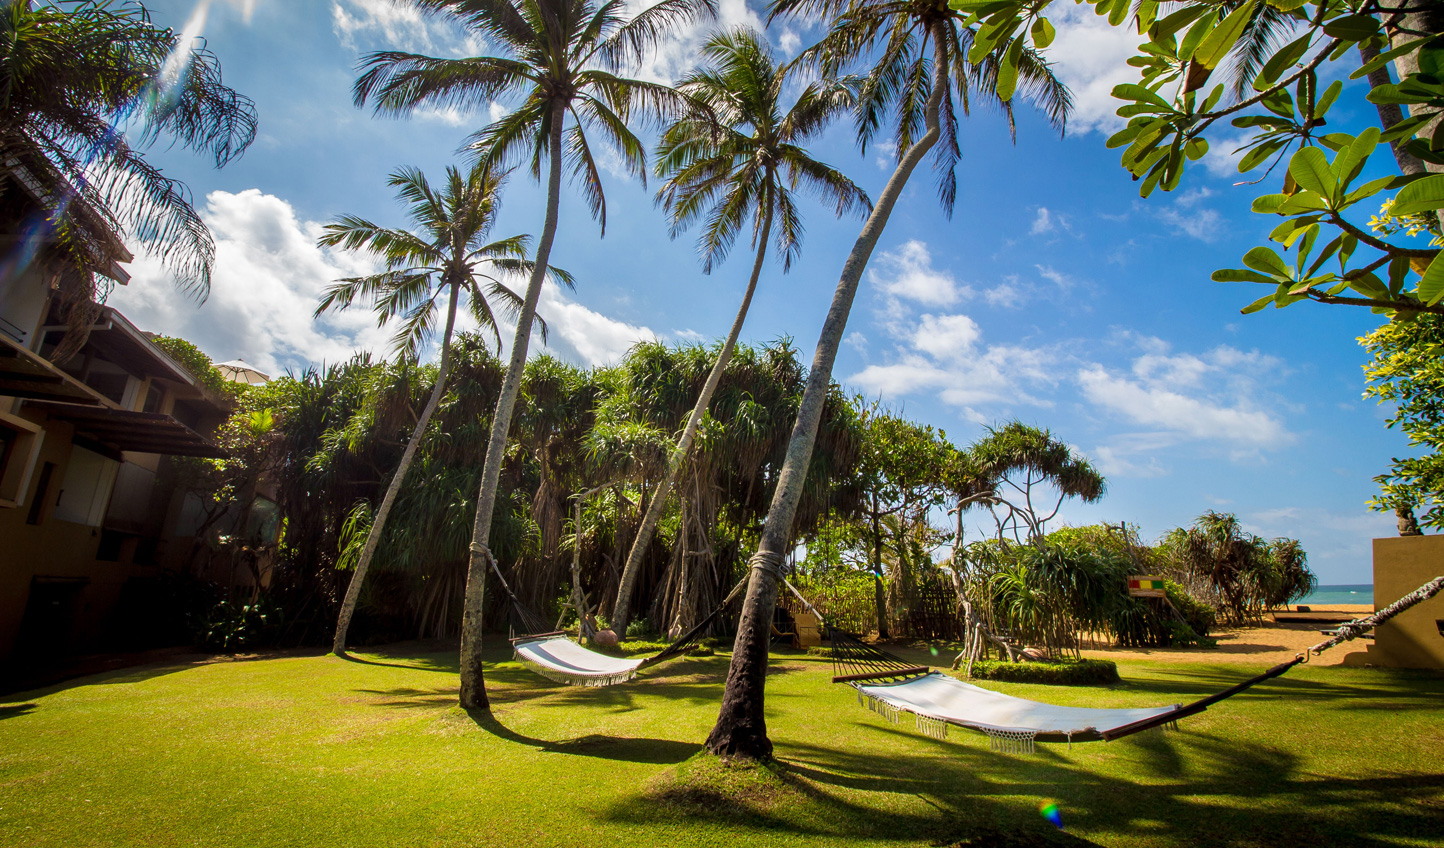 Palm fringed gardens and hammocks swayed by an ocean breeze